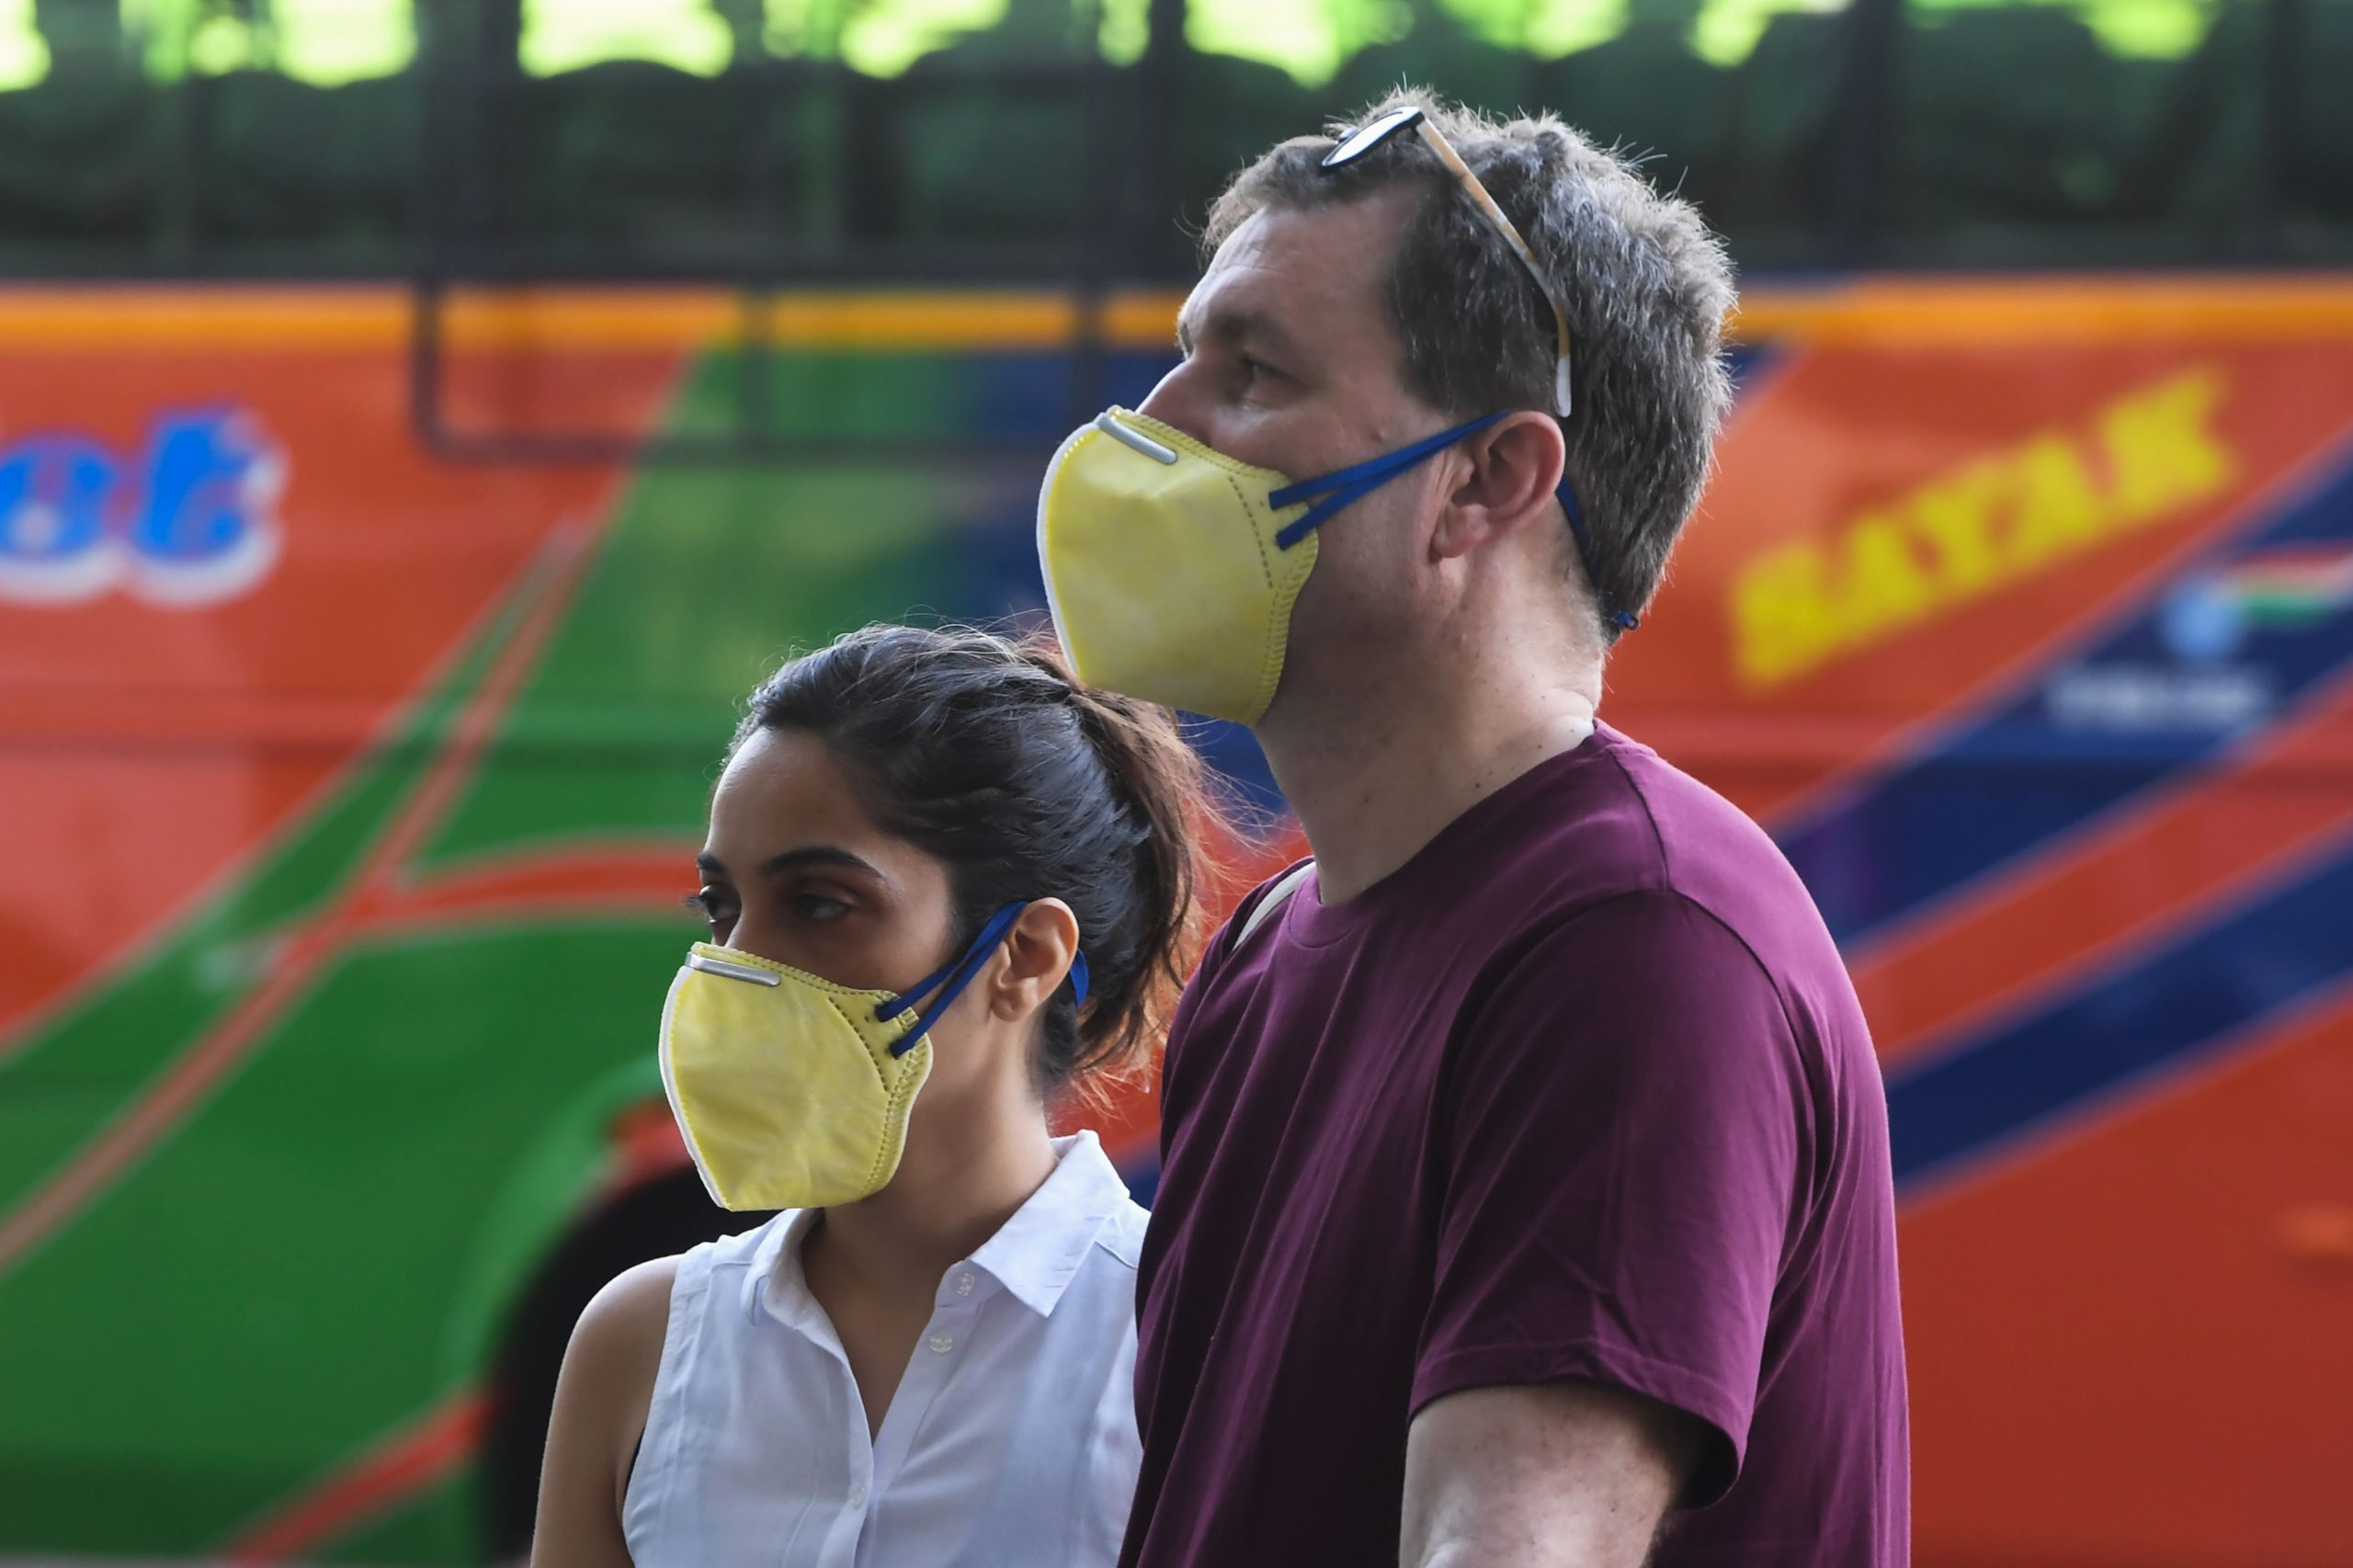 Foreign nationals wearing facemasks line up outside the departure terminal of the Netaji Subhash Chandra Bose International Airport to board a special evacuation flight during a government-imposed nationwide lockdown as a preventive measure against the COVID-19 coronavirus, in Kolkata on March 31, 2020. (Photo by Dibyangshu SARKAR / AFP)